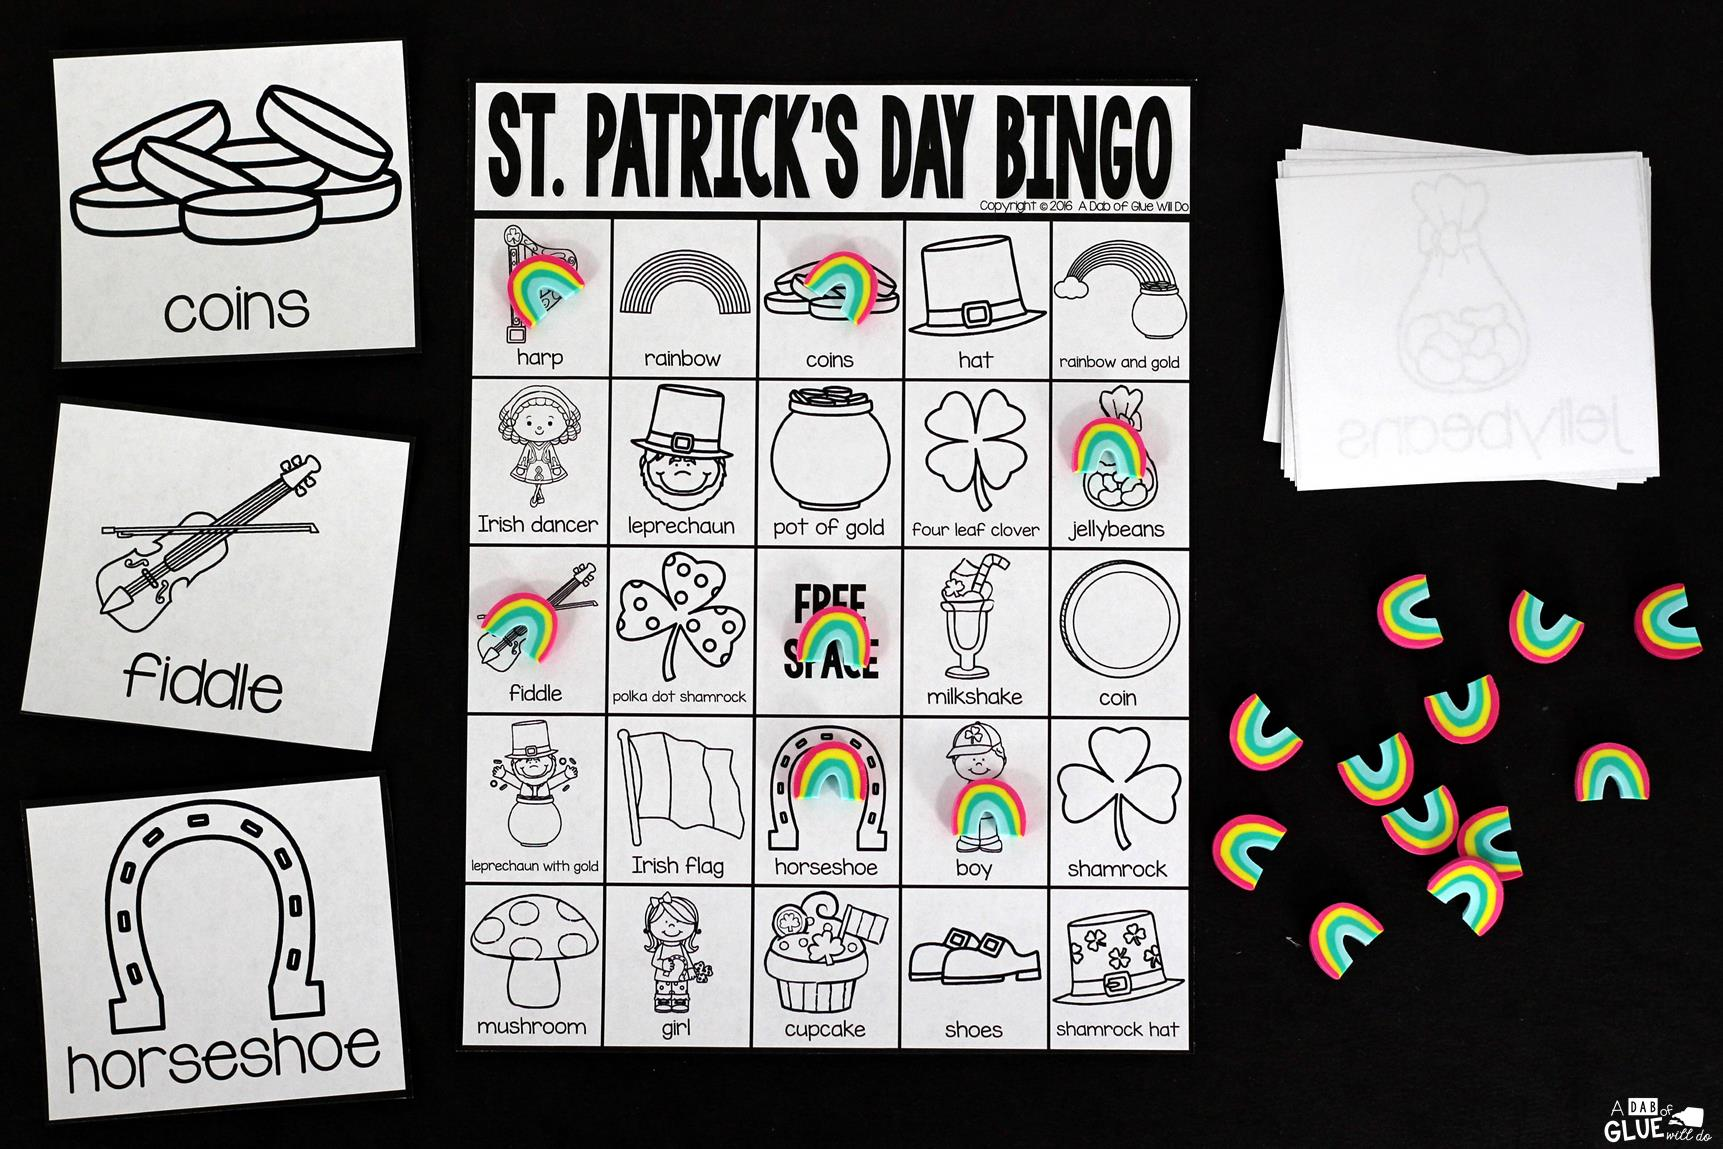 photo relating to St Patrick's Day Bingo Printable called Bingo Sheets for St. Patricks Working day -